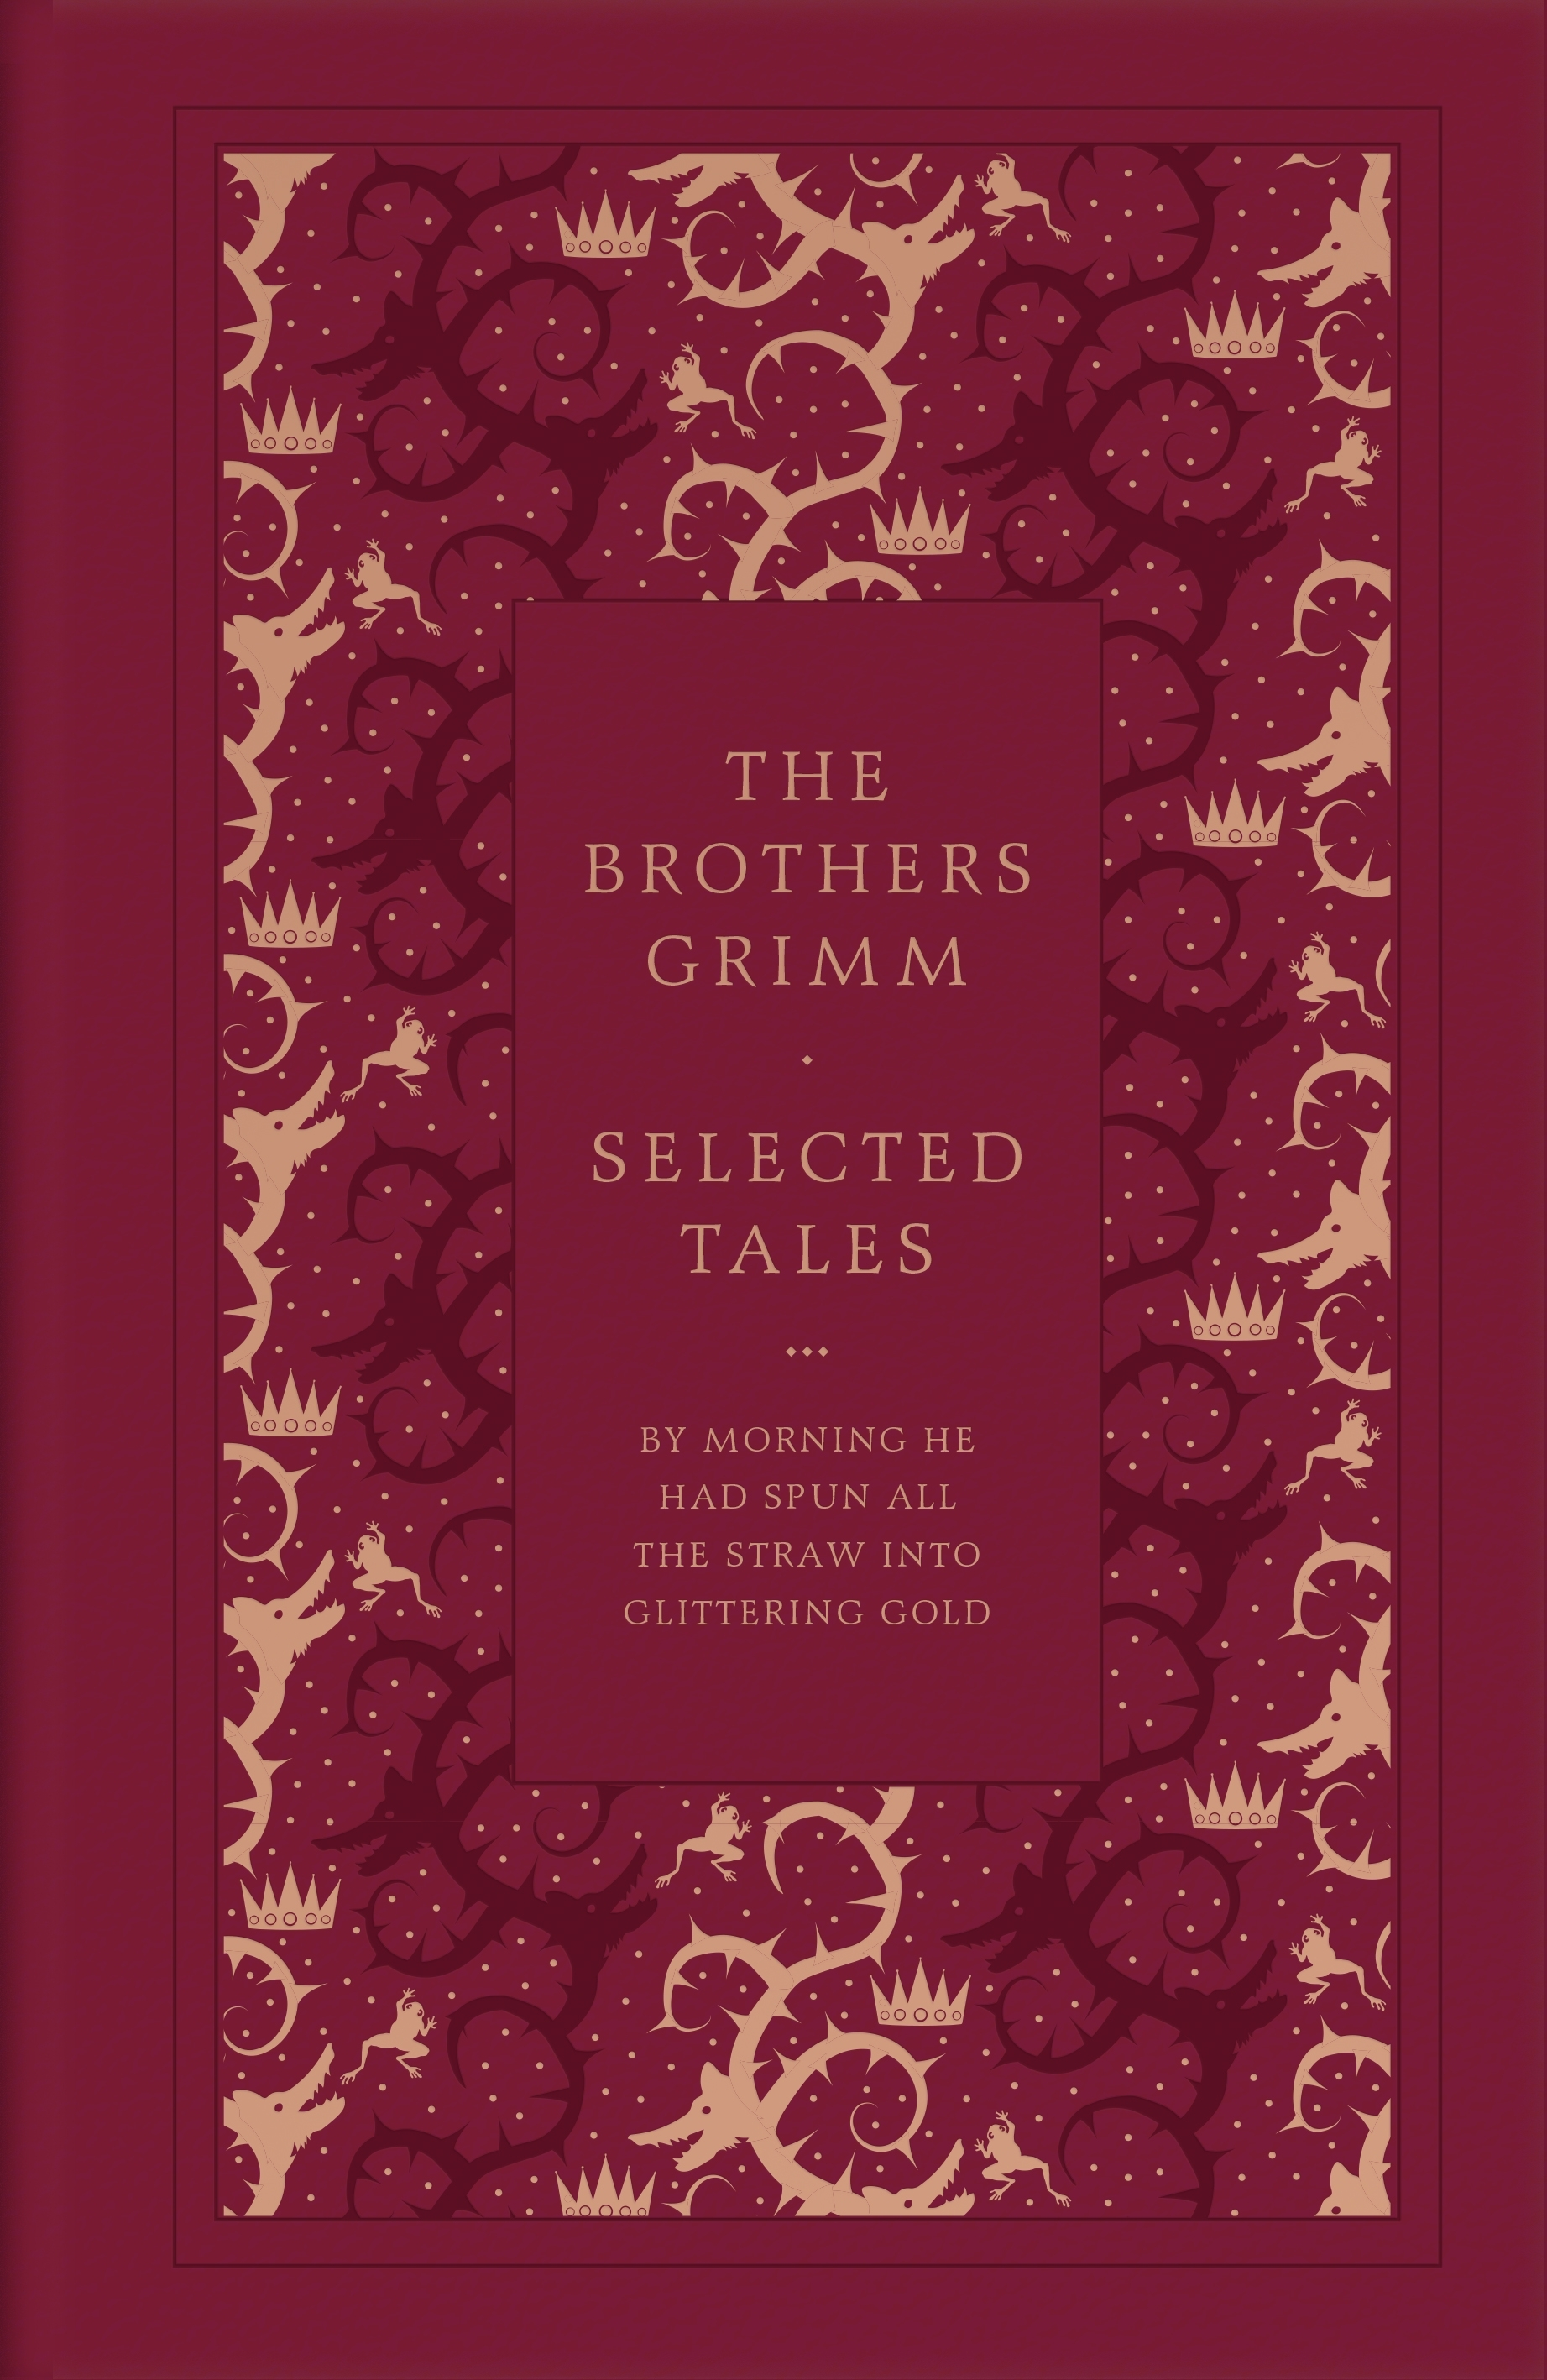 Random tales of the Brothers Grimm 99